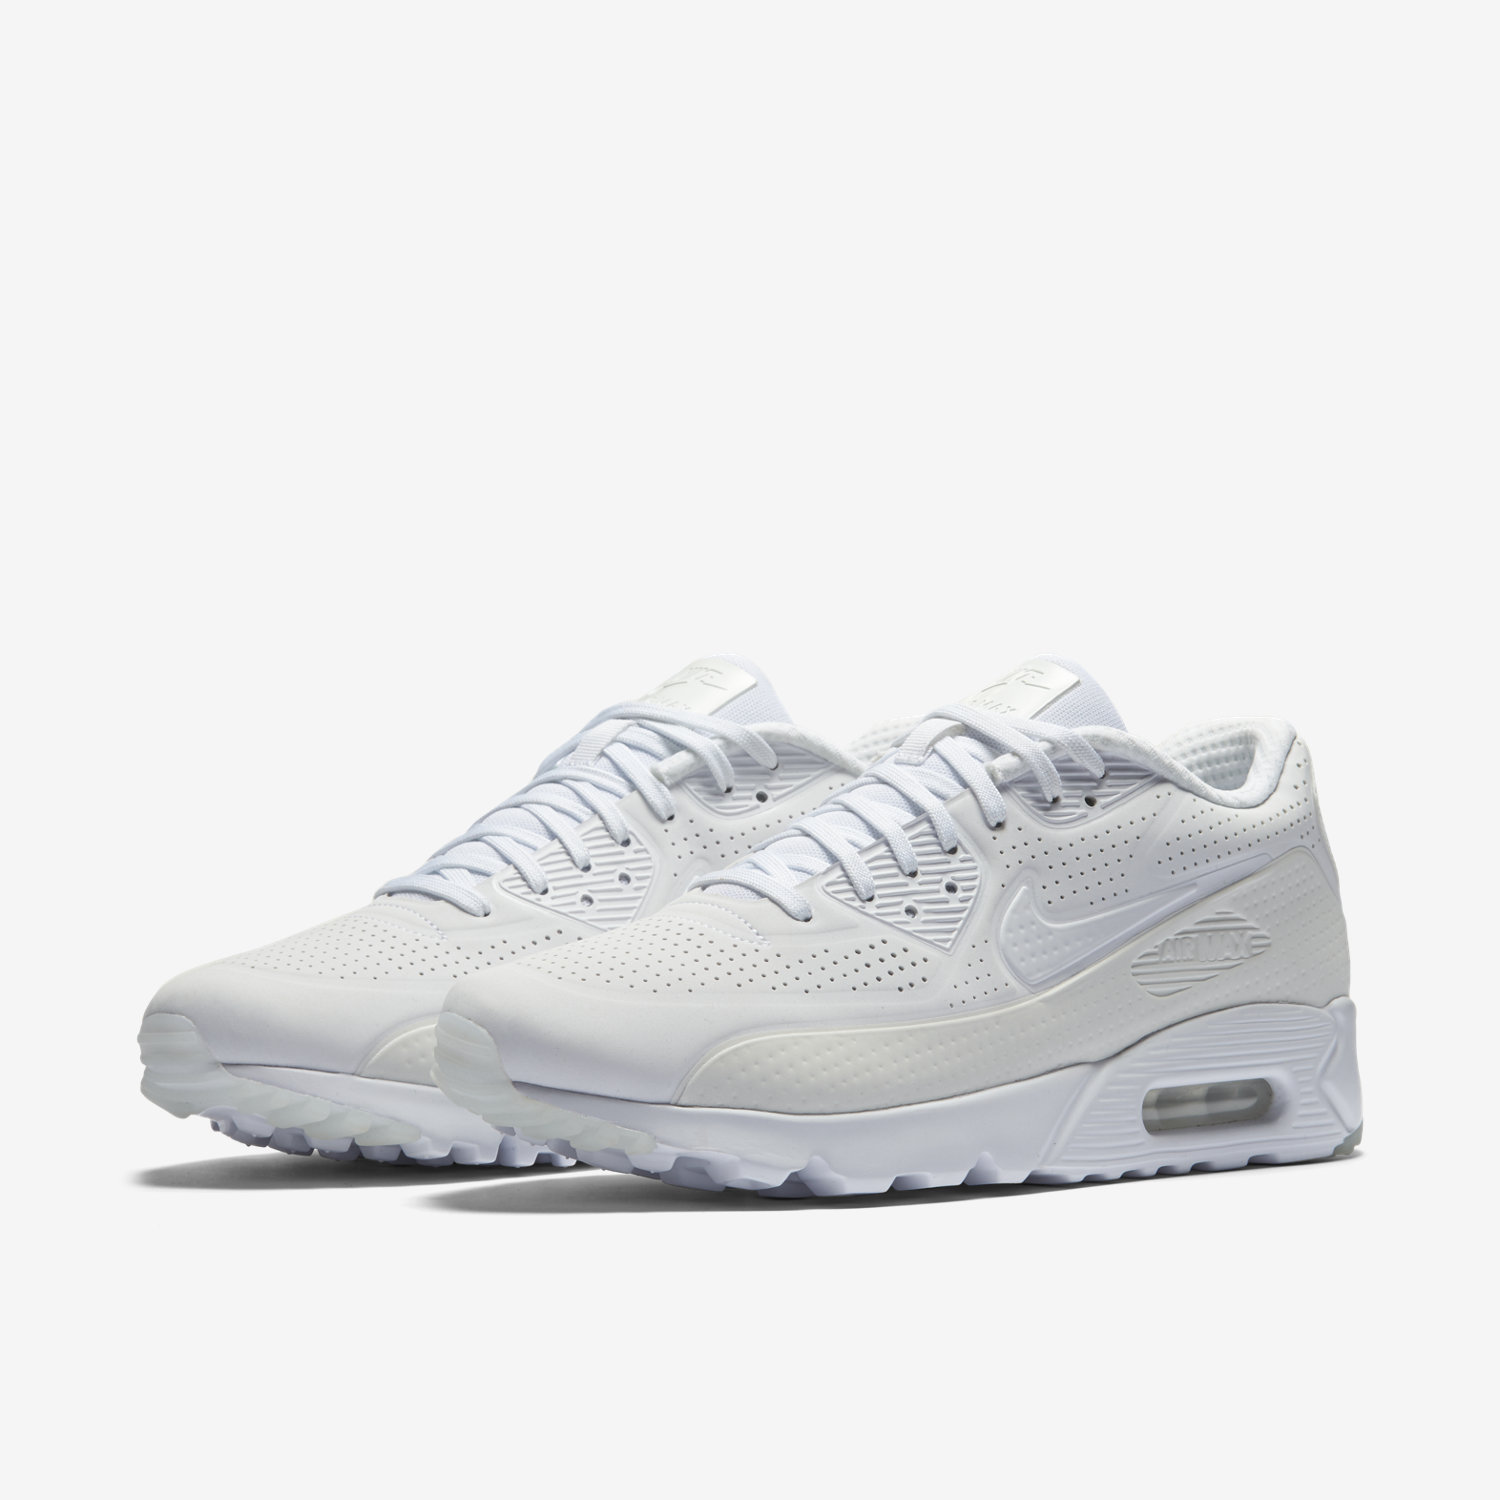 Nike Air Max 90 Ultra Moire Sneakers White White